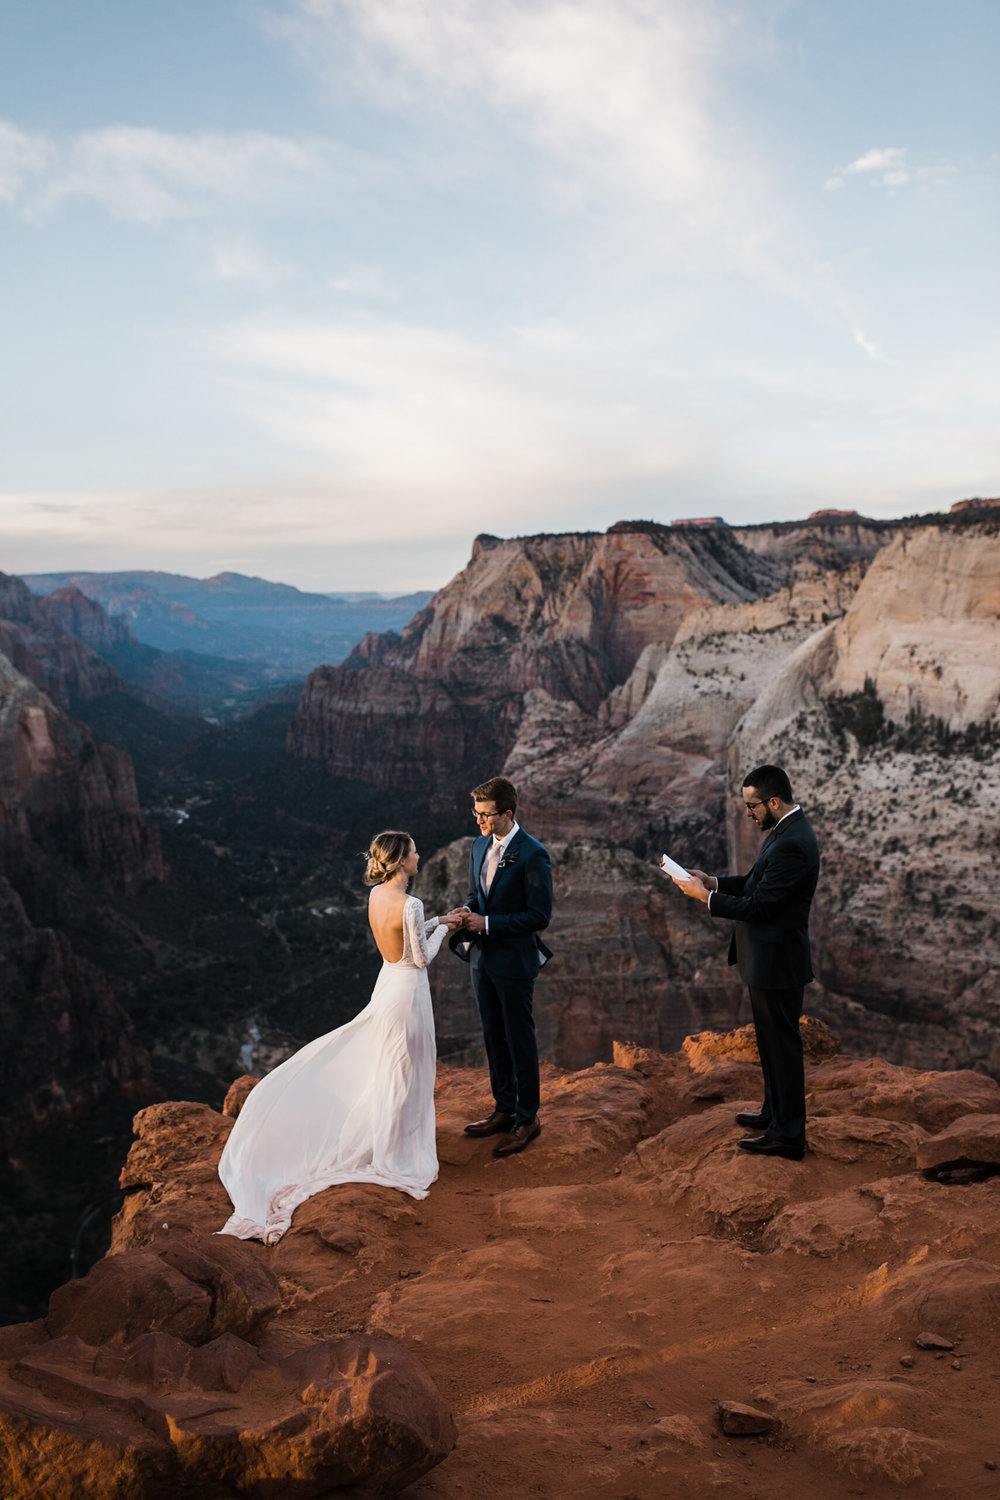 zion national park elopement inspiration | utah adventure wedding photographer